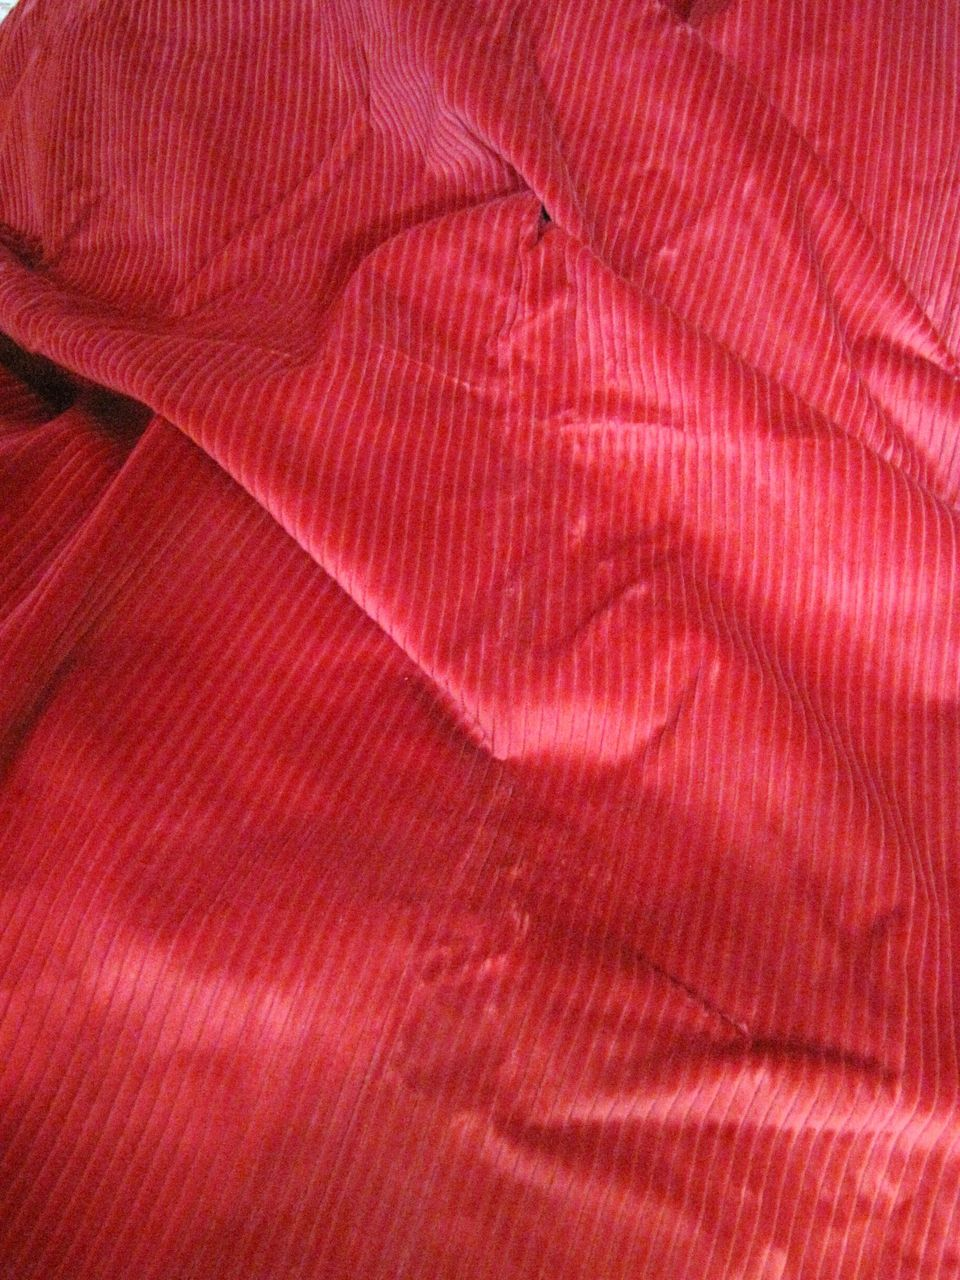 "Wonderful 3yds 24"" Long Bolt End of Red Wide Weave Upholstery Corduroy"